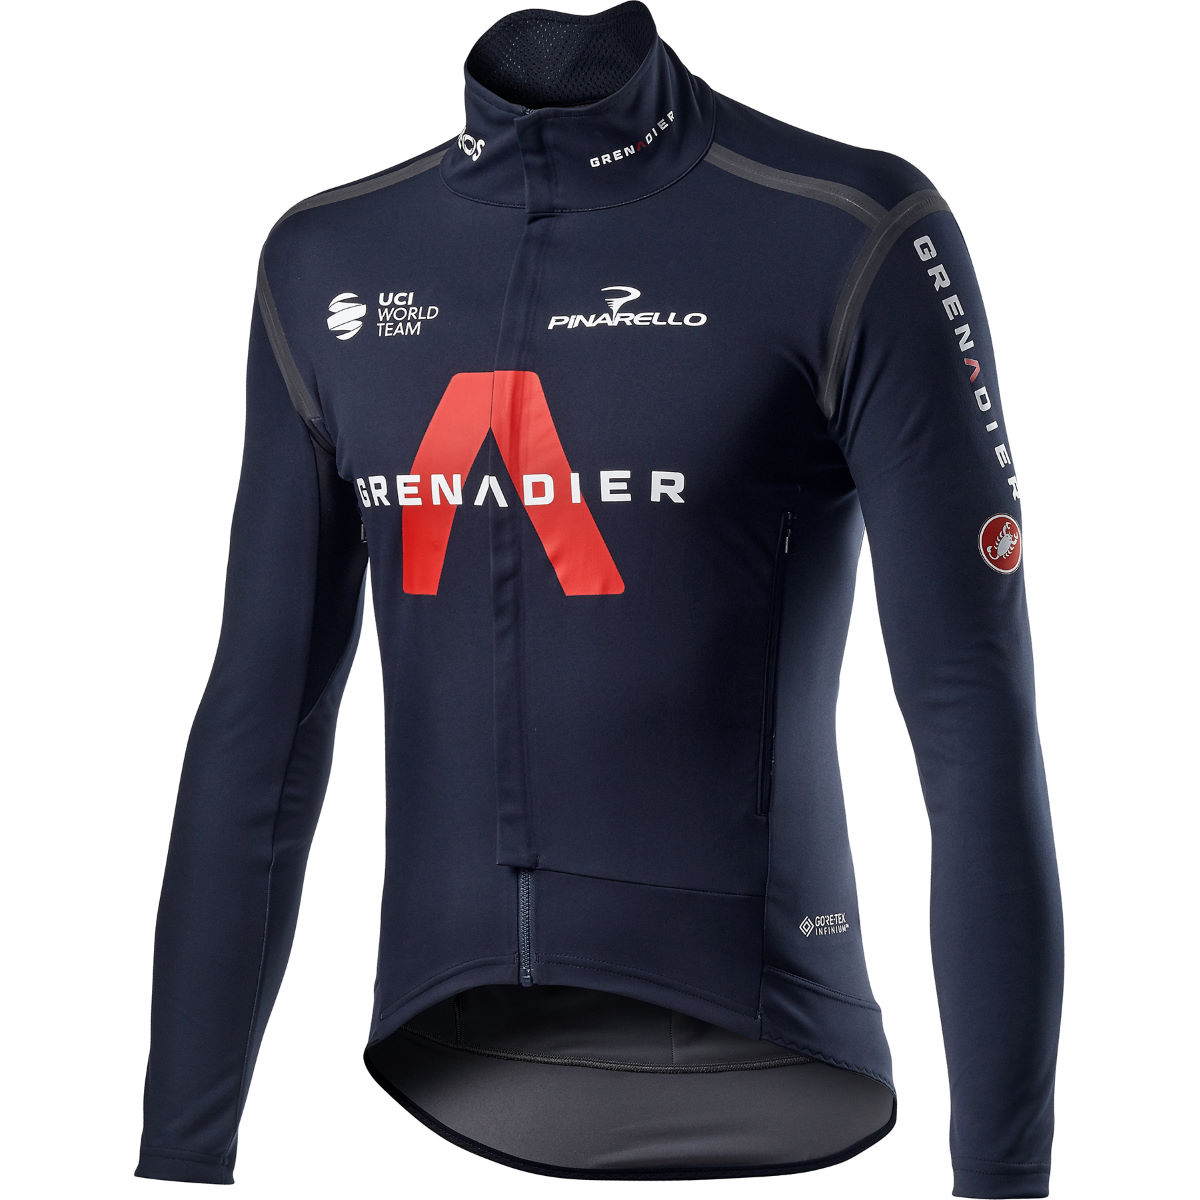 ComprarCastelli Team Ineos Grenadier Perfetto Ros LS Jersey - Maillots